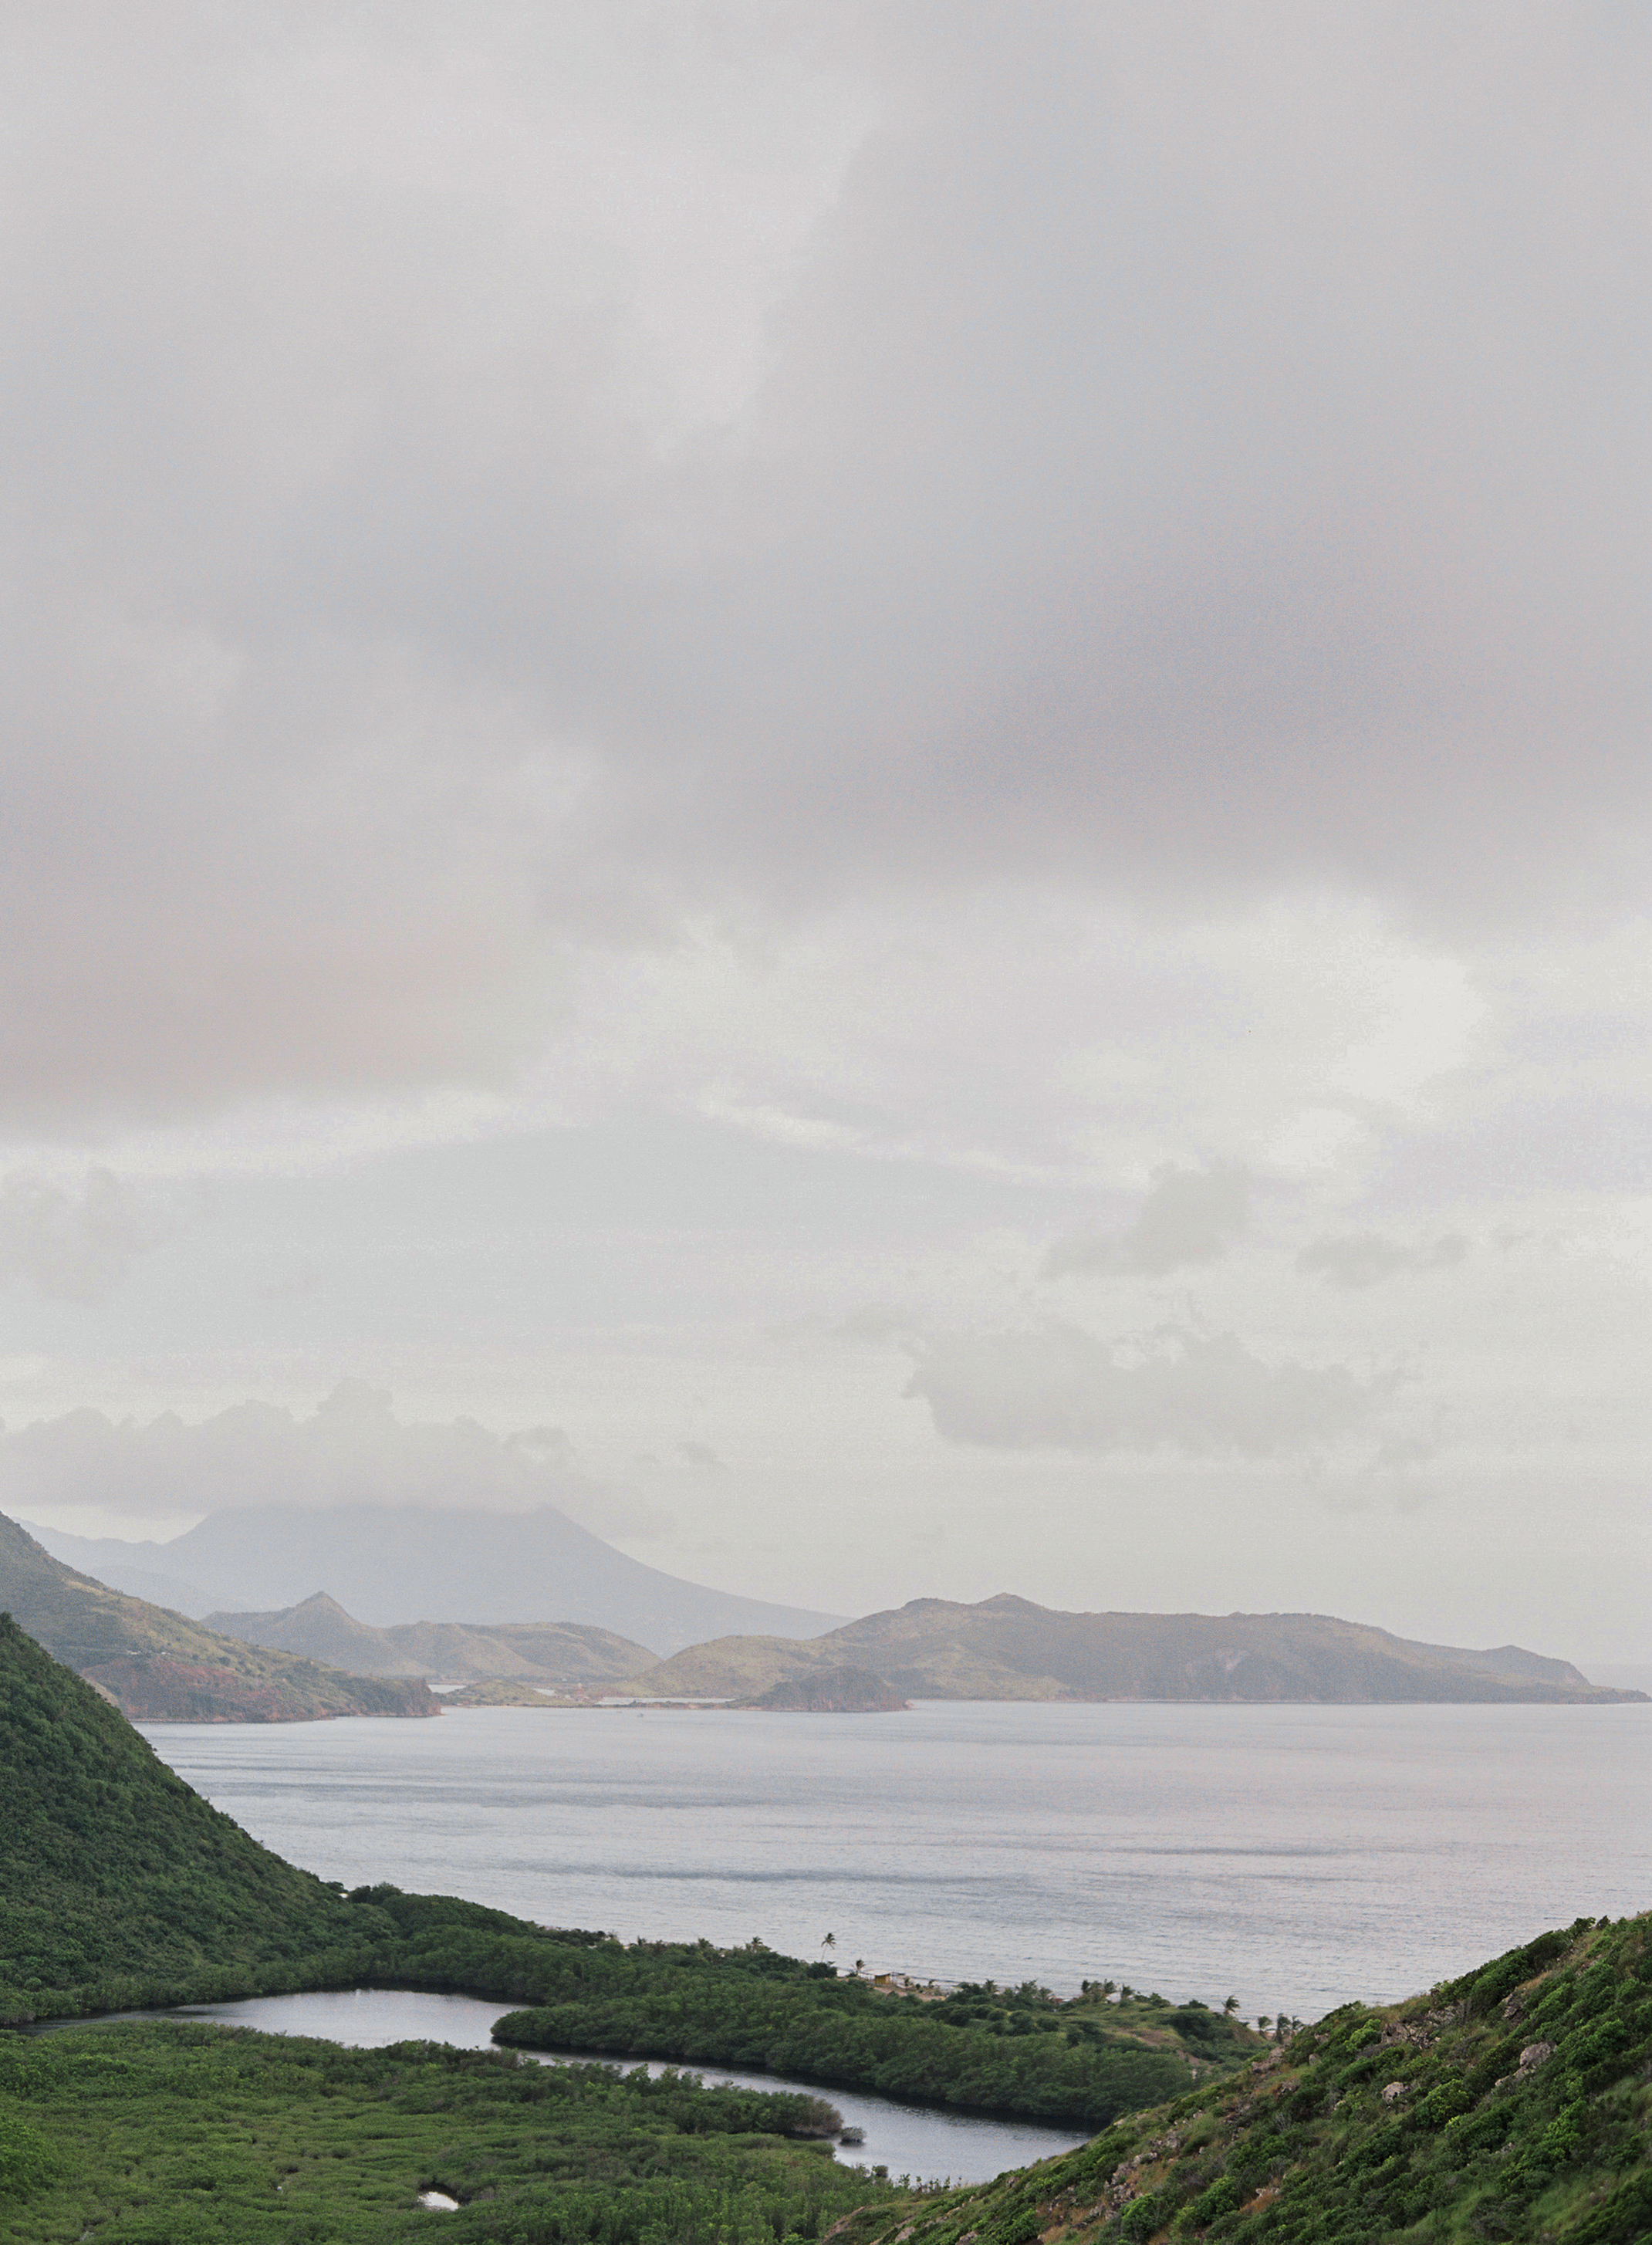 laura gordon - 329-lauragordonphotography_stkitts.jpg